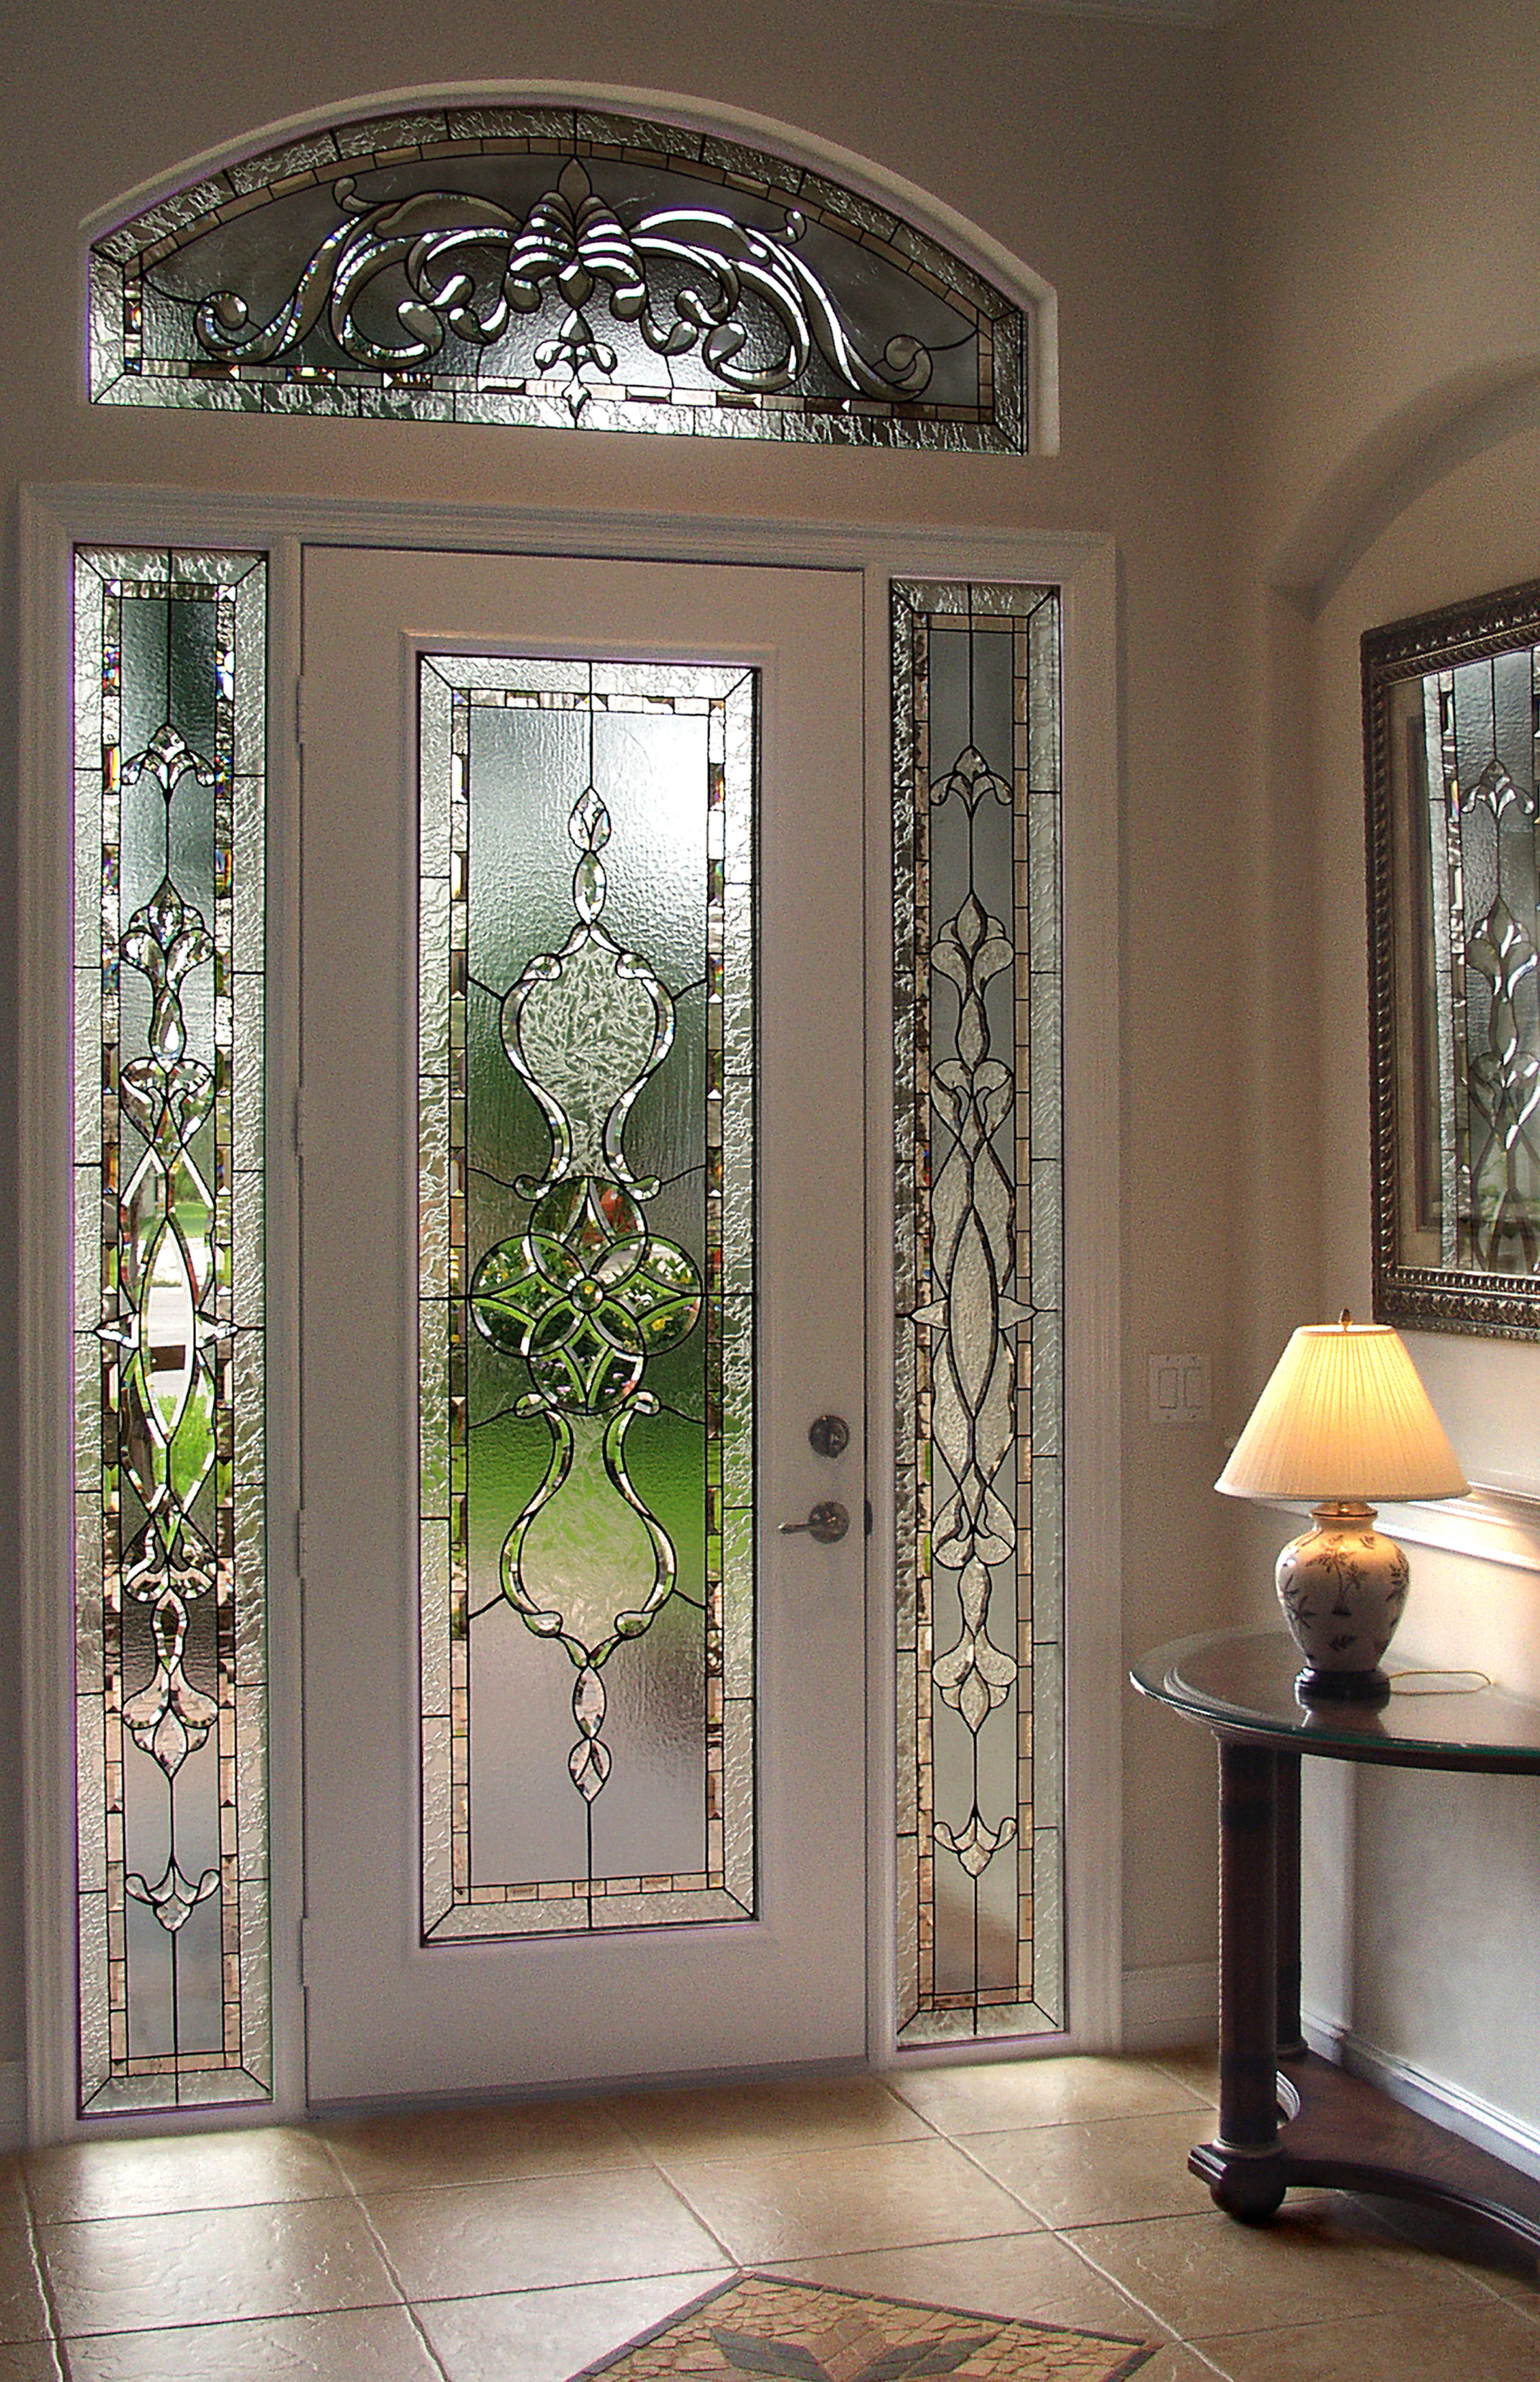 Custom Italianate design in beveled glass, with tones of gray and peach